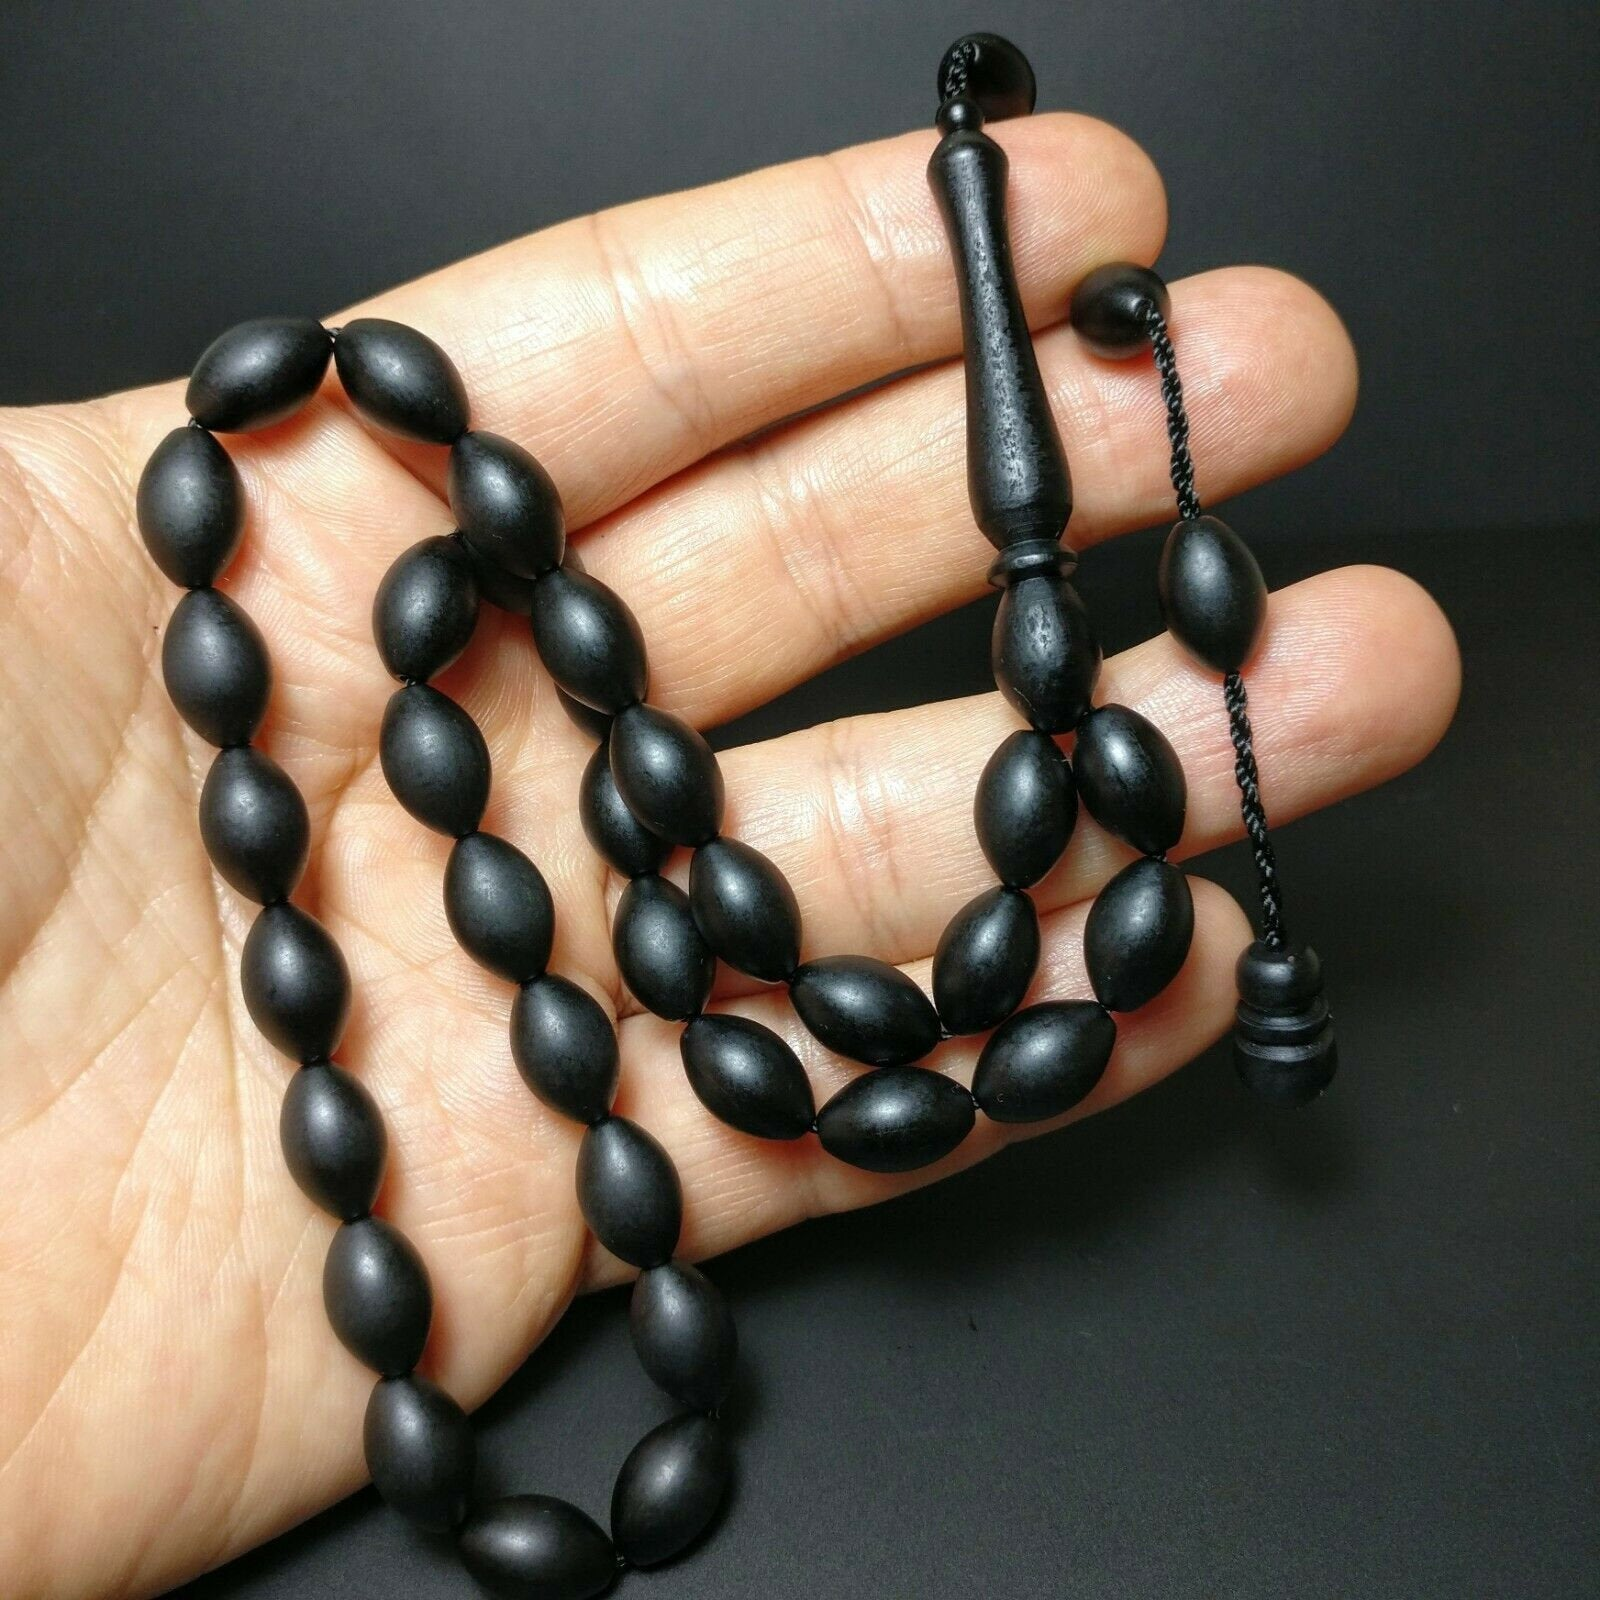 Prayer Beads from German Fiber, Alman Fiber Tesbih Muslim Islam Tasbih Turkish Misbaha Subha Komboloi, Tespih, Worry Beads 972